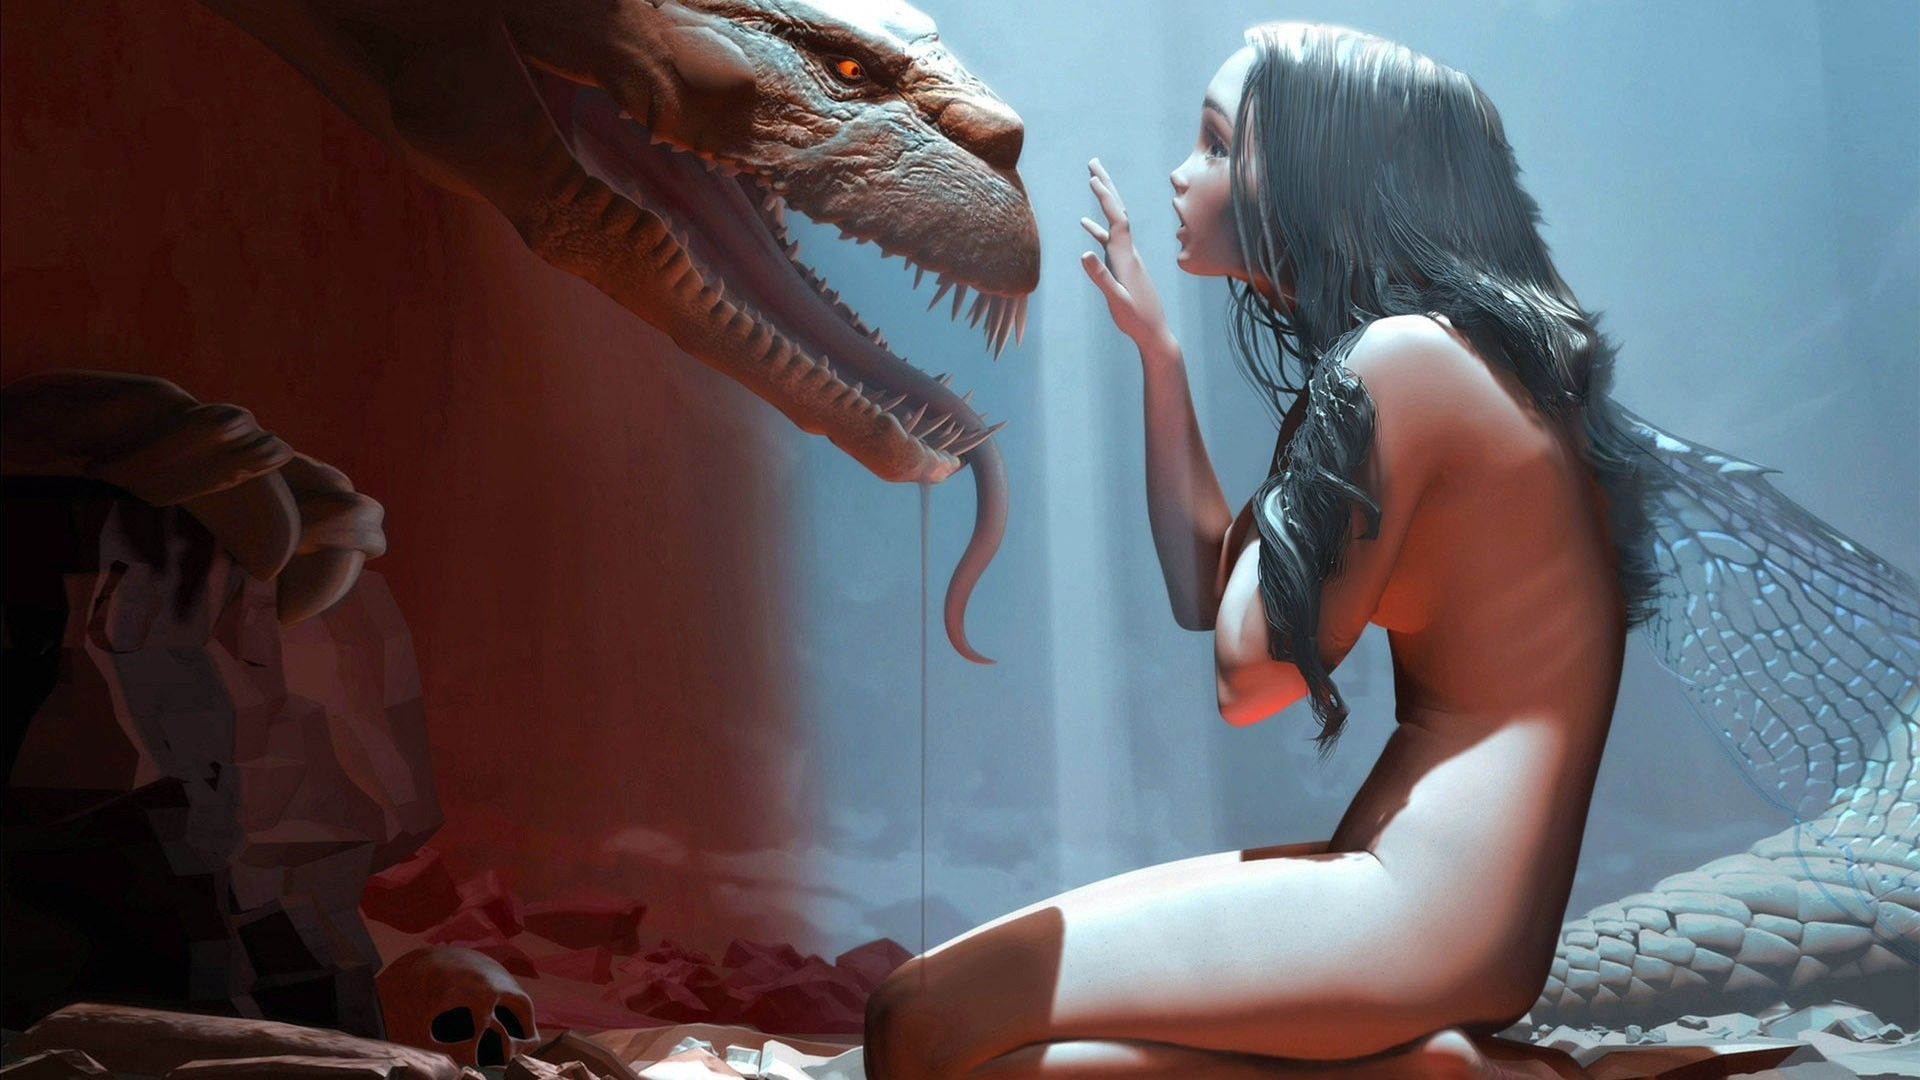 Videos of 3d monsters licking women's pussy exposed image